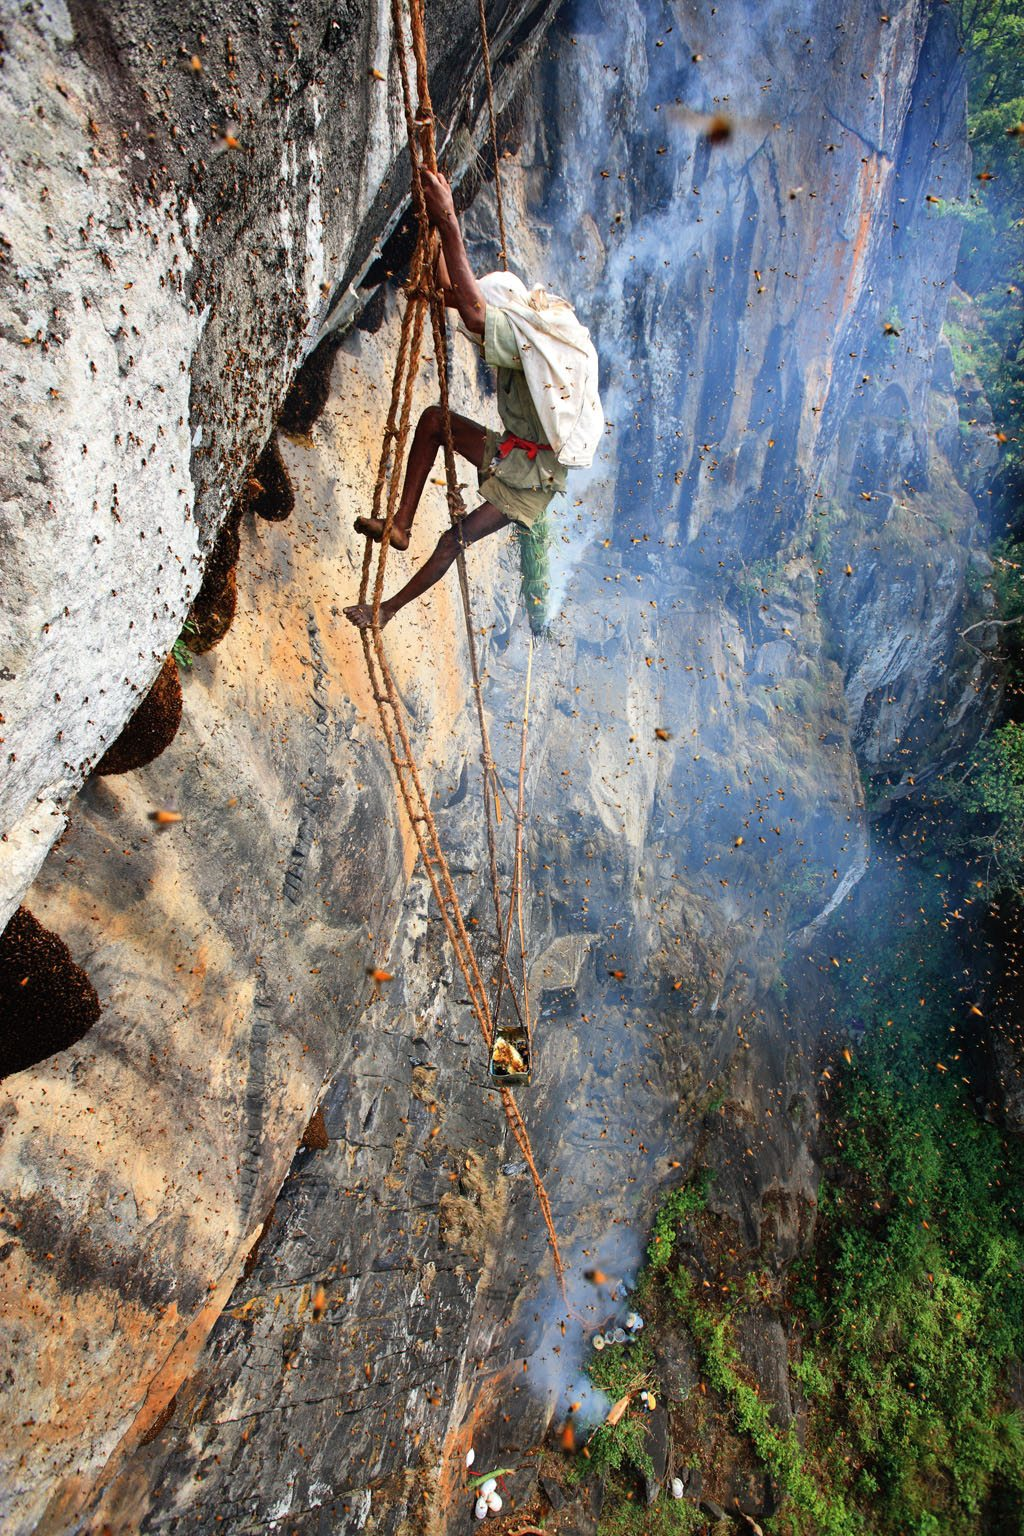 A honey gatherer of the Irula tribe in the Nilgiri hangs precariously along the side of a cliff from a rope ladder he wove himself. The giant rock bees build their hives under protected overhanging sections, making the honey gatherer's task rather dangerous. Photo: Eric Tourneret